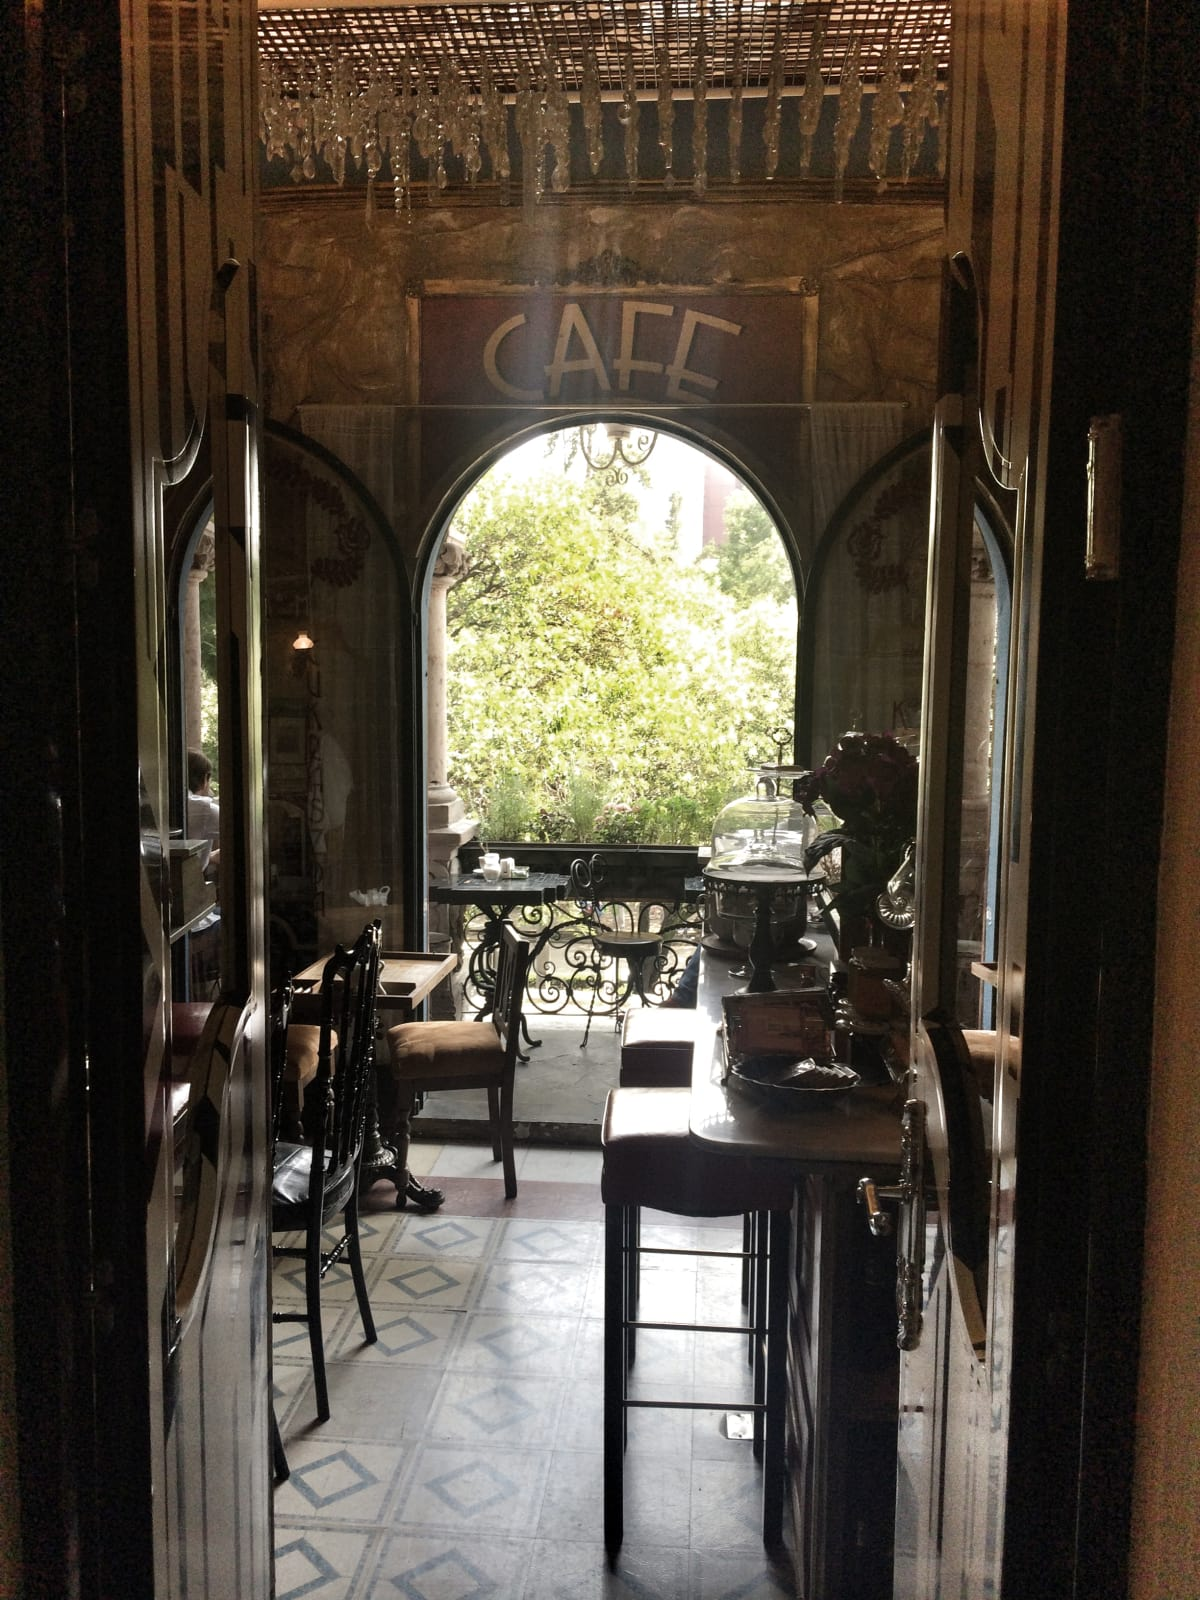 News, Shelby, Polanco in Mexico City, July 2015, Cafe in Common People store